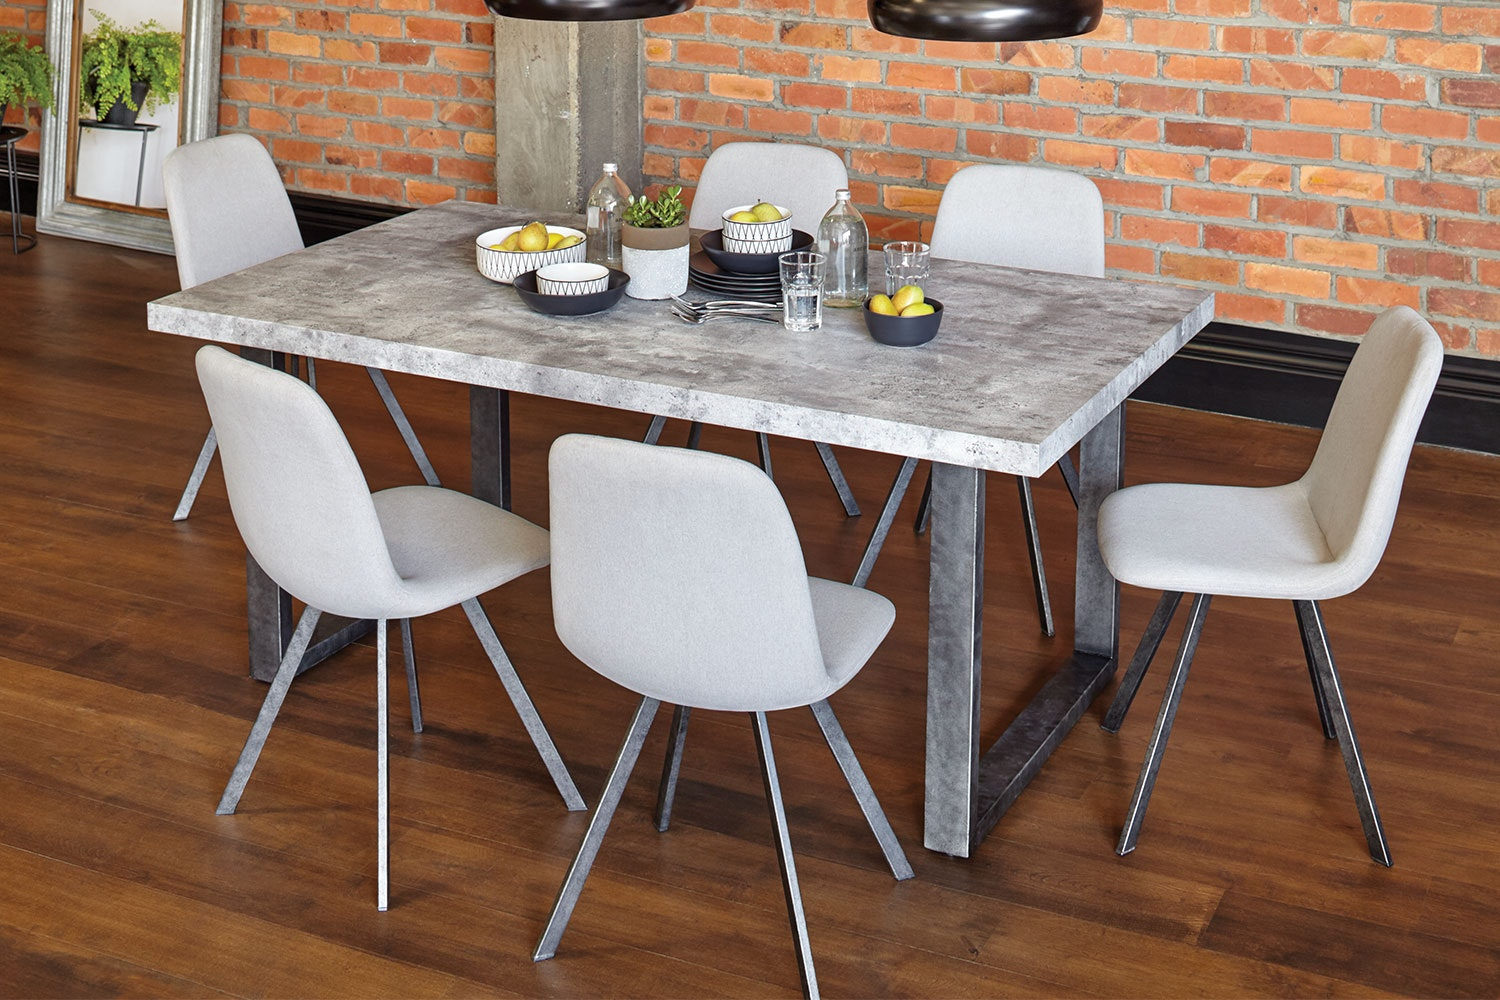 Yolanda 7 Piece Dining Suite by Stoke Furniture - Stone